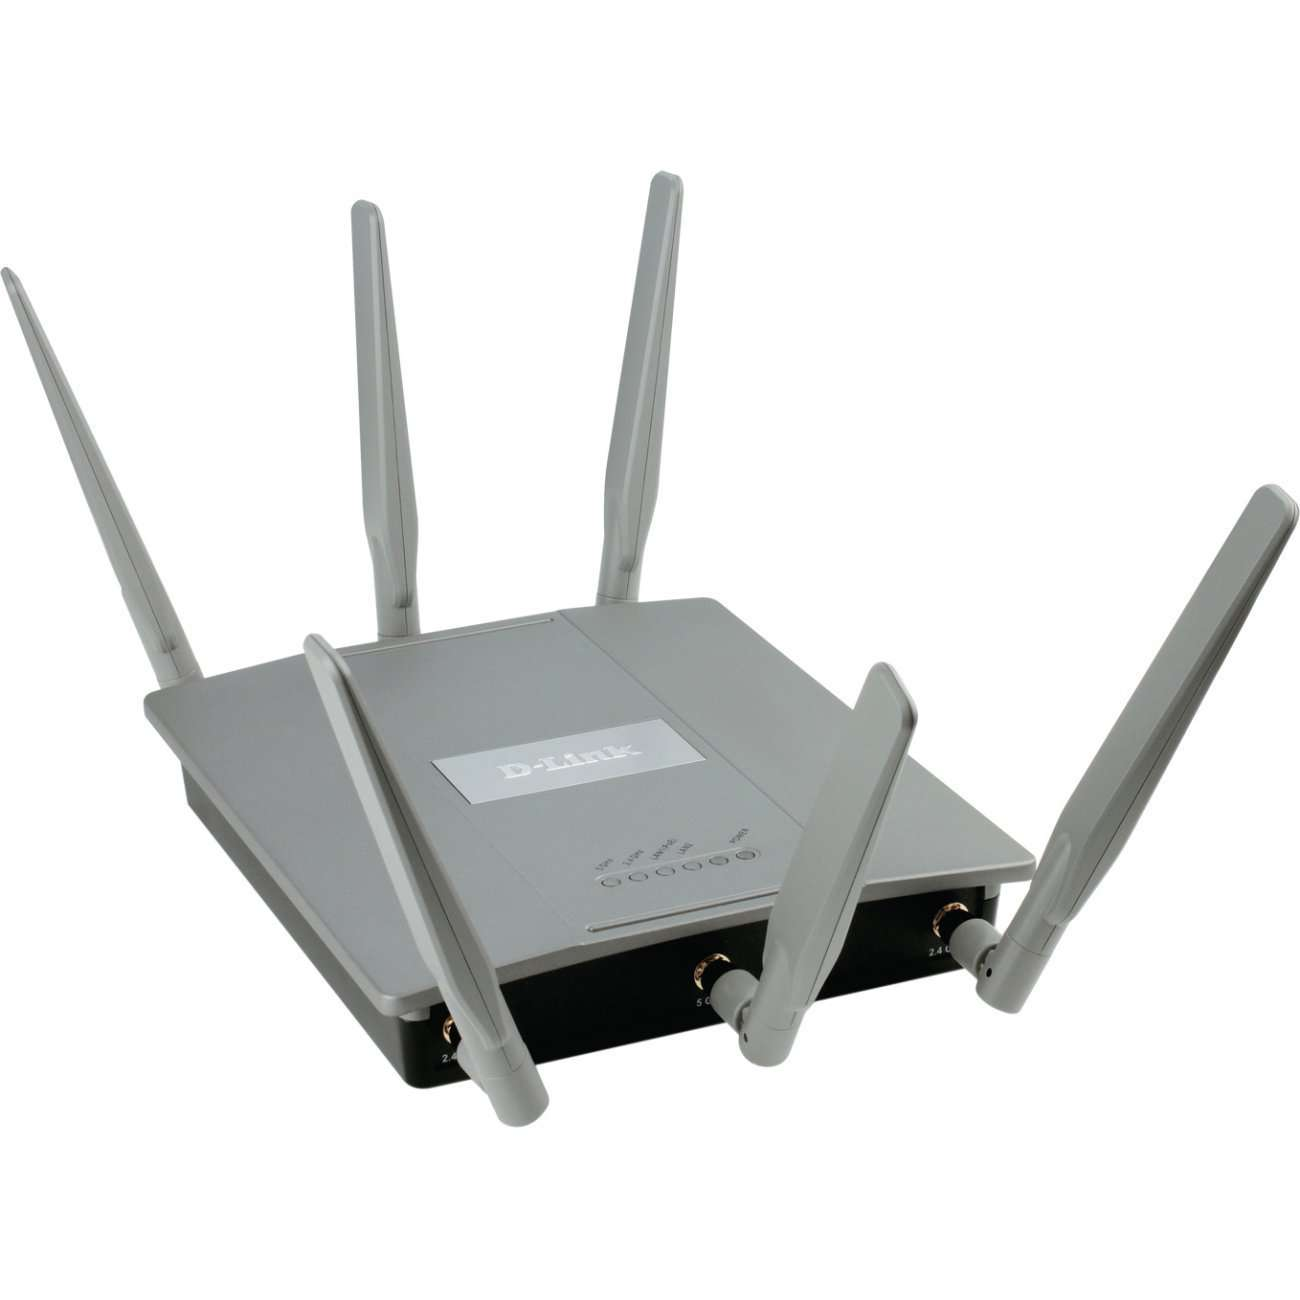 D-Link AirPremier DAP-2695 IEEE 802.11ac 1.27 Gbit-s Wireless Access Point - ISM Band - UNII Band